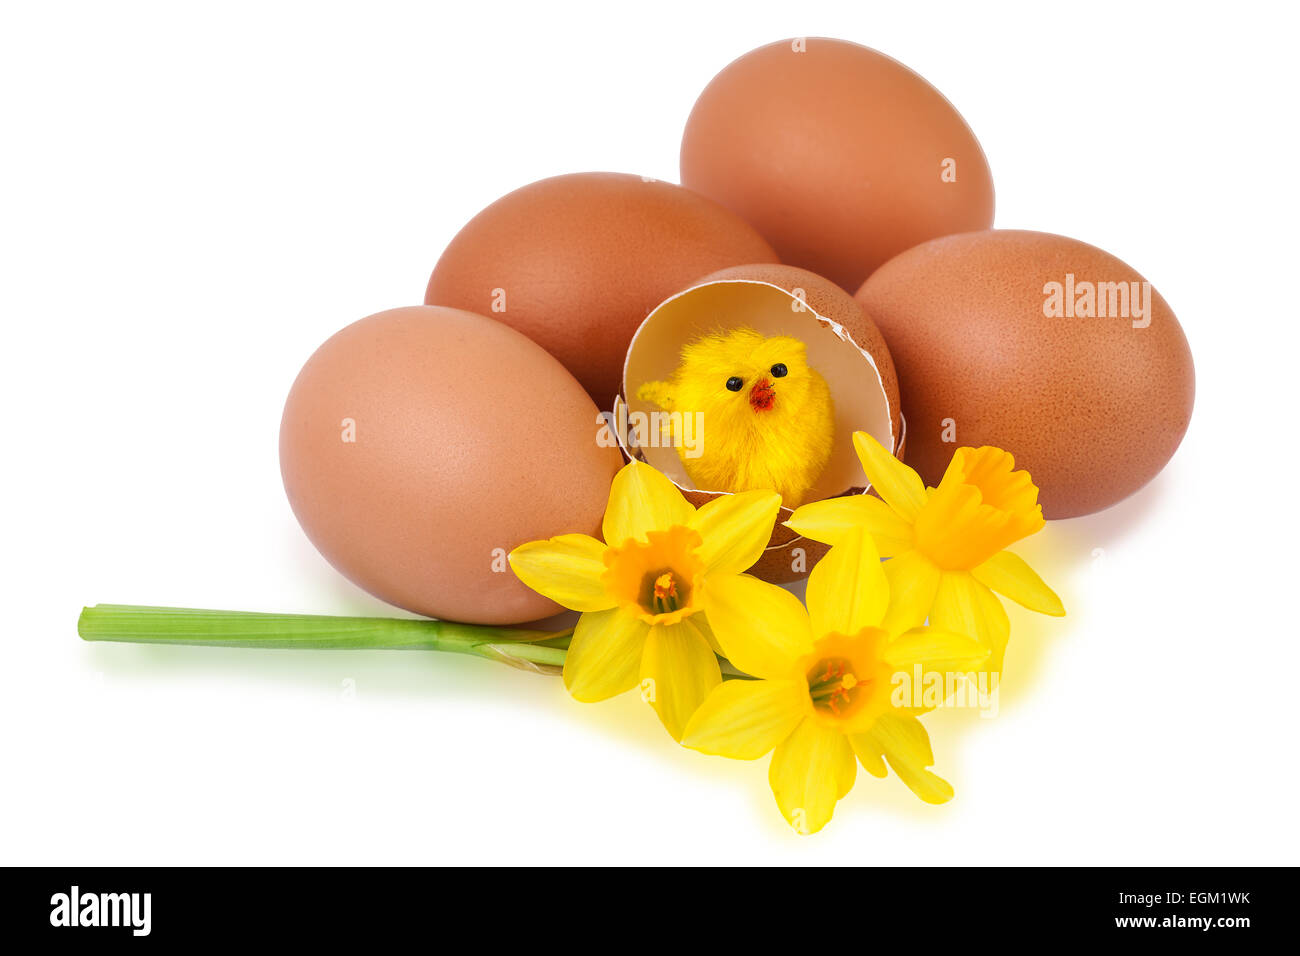 Easter egg decoration with funny chick - Stock Image